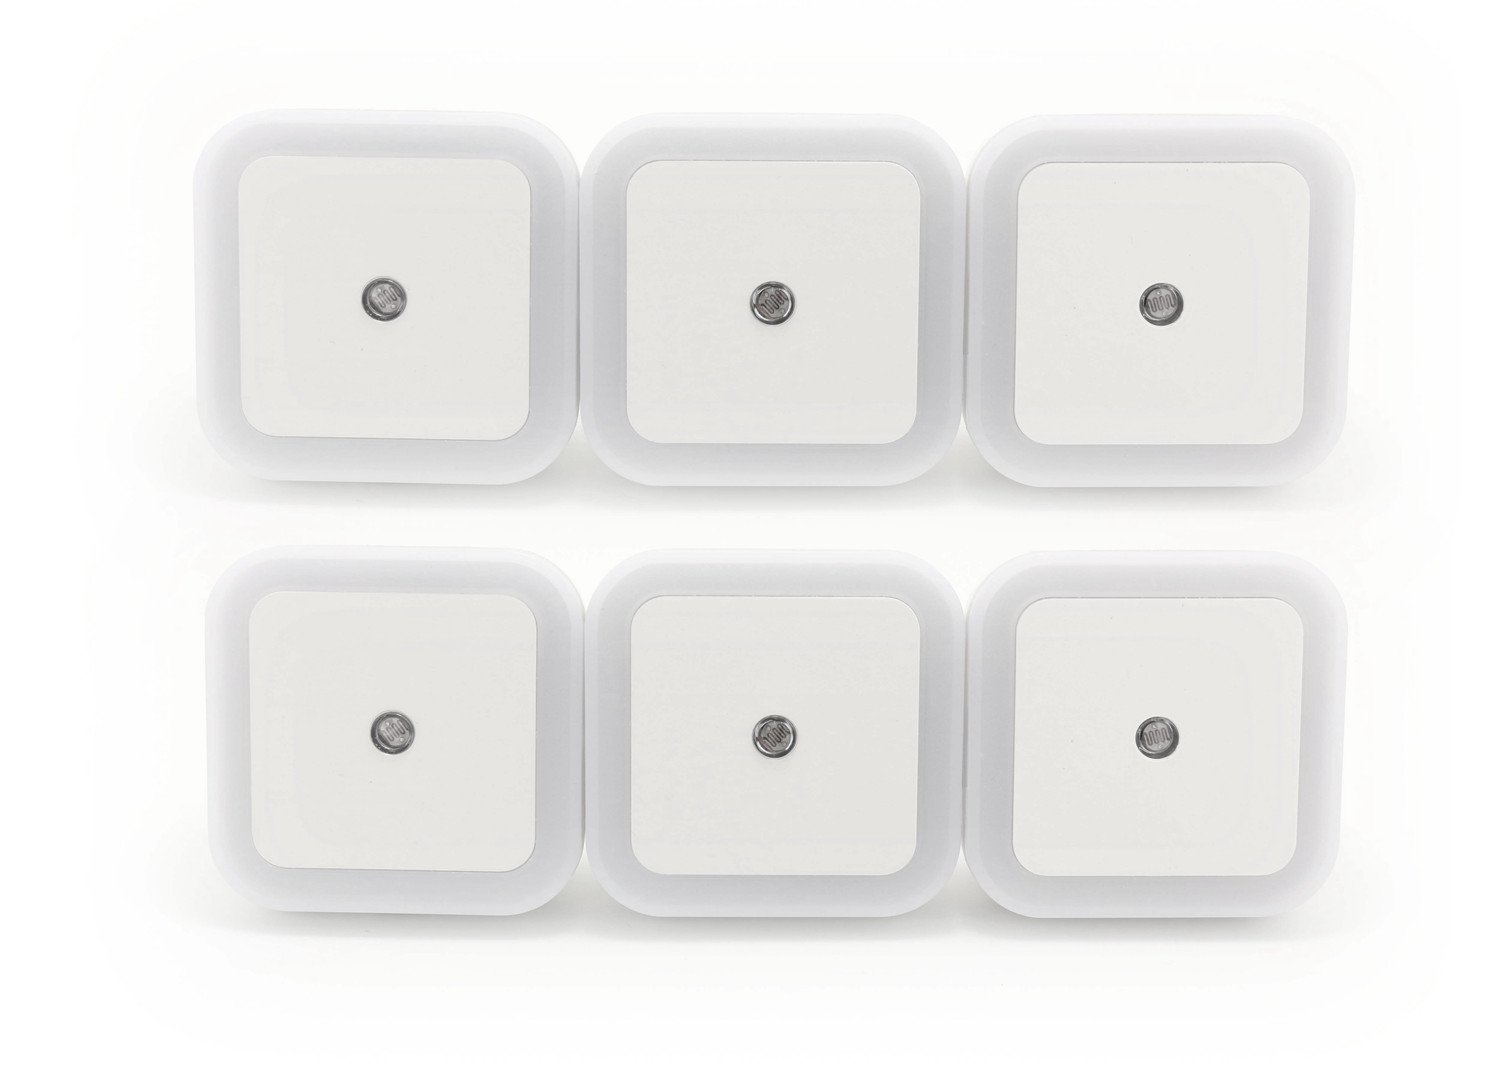 Fancystyle 0.5W Plug in LED Night Light Lamp with Smart Sensor Dusk to Dawn Auto Turn on/off,Soft Brightness for Bathroom,Bedroom (6-pack white square)